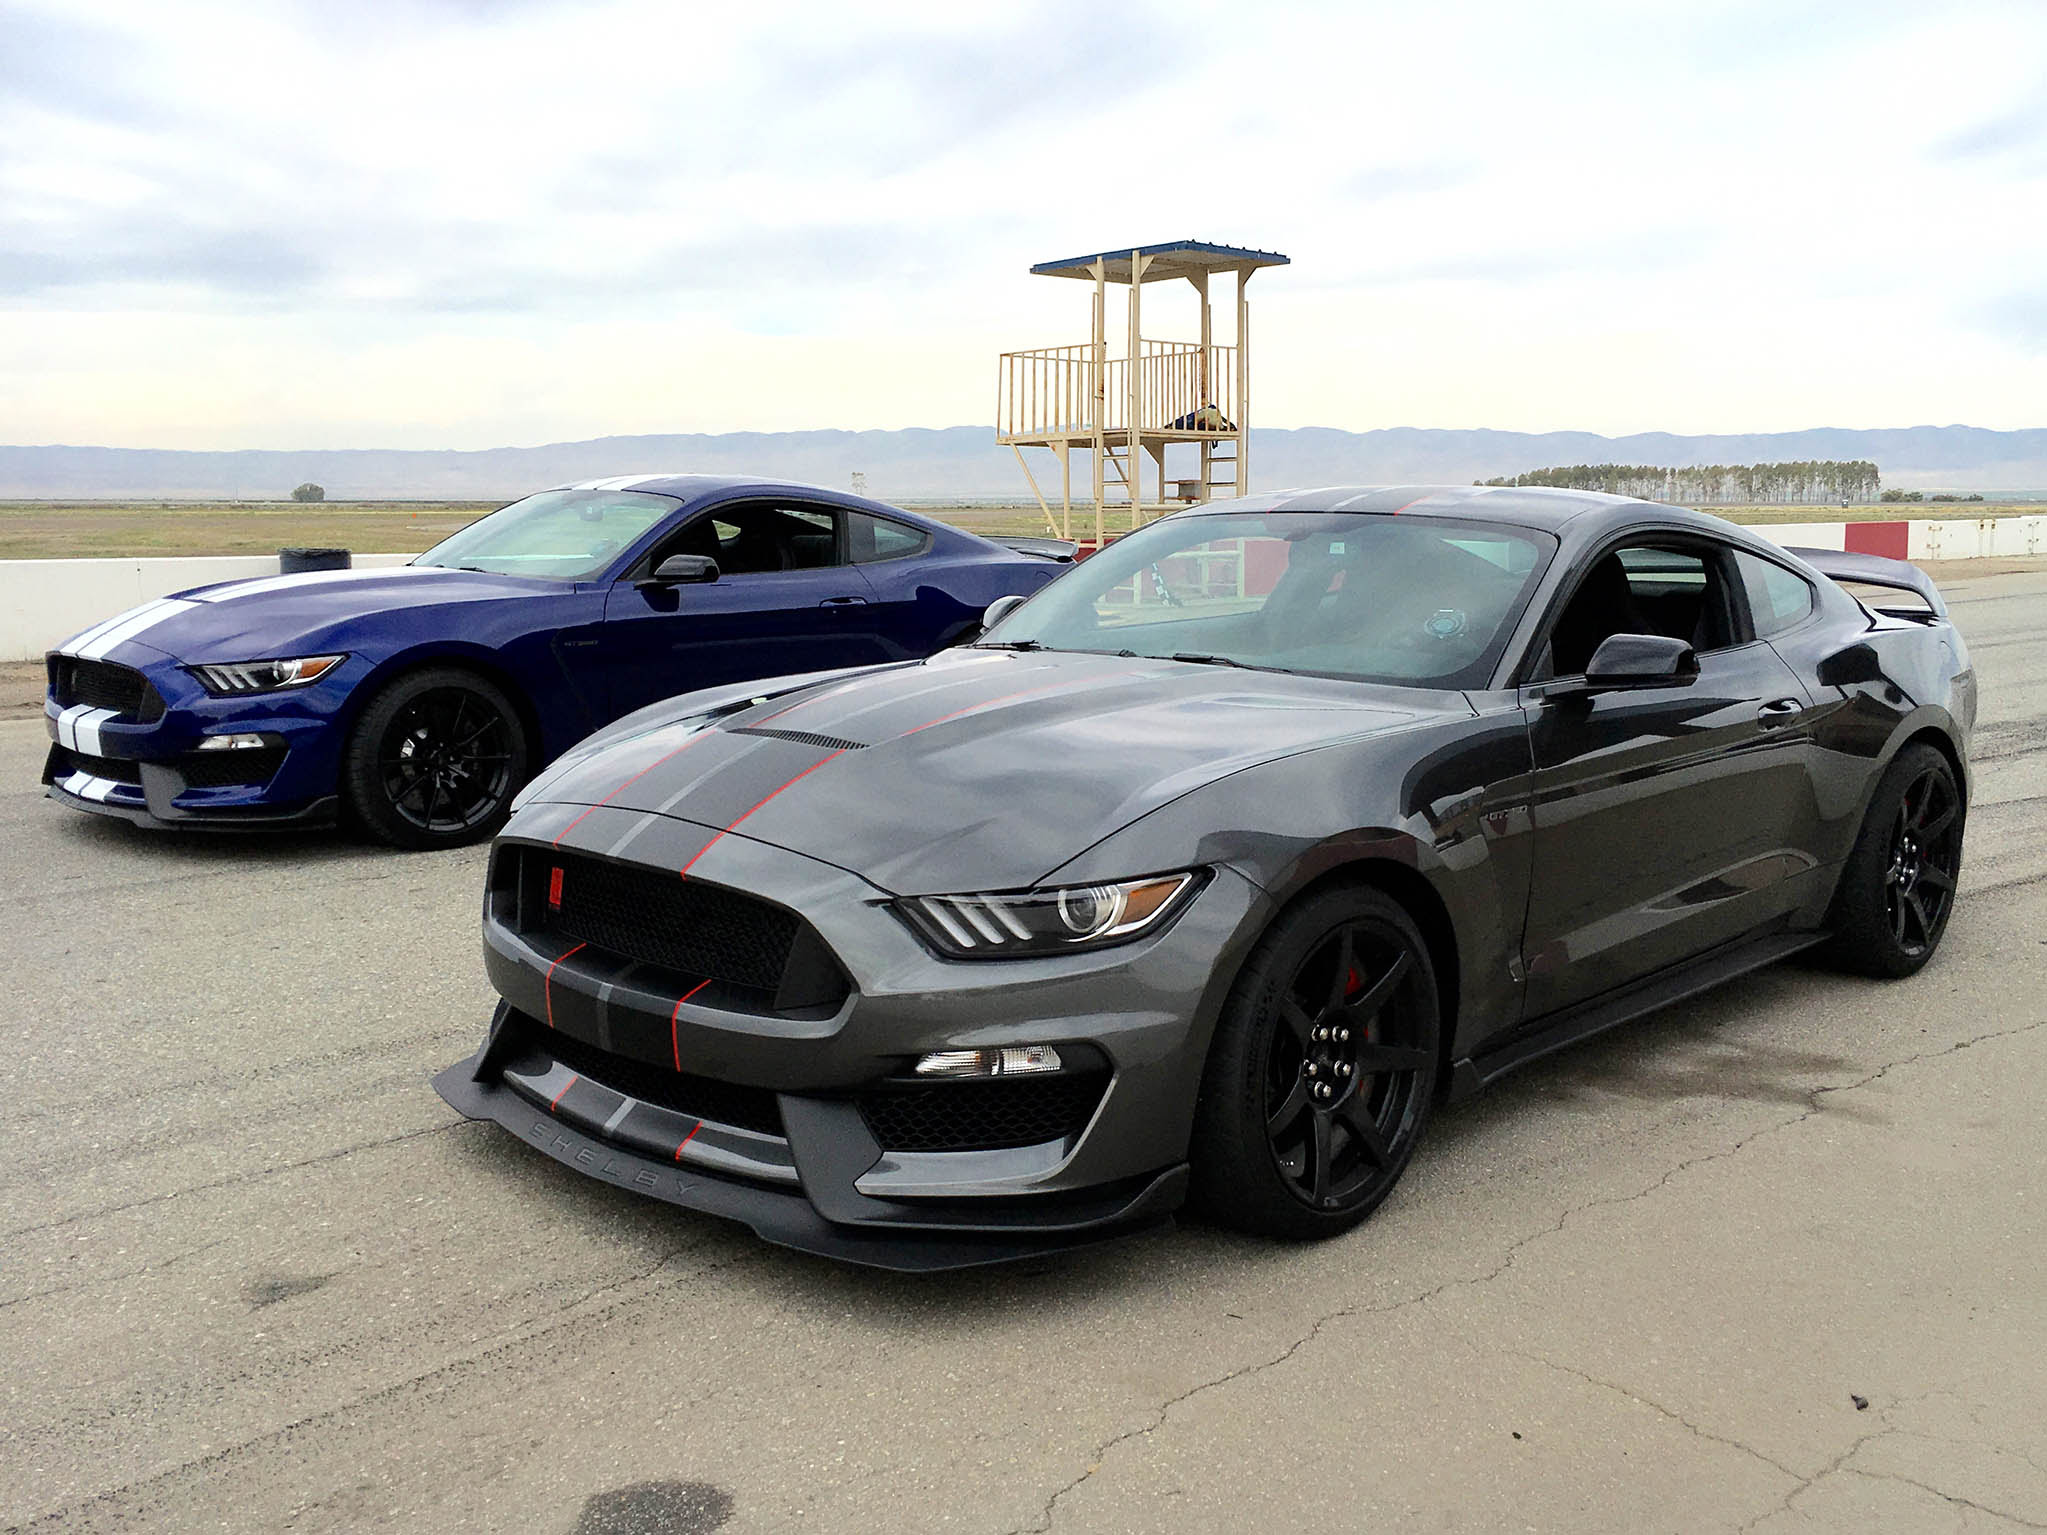 2016 Ford Mustang Shelby GT350: Review - Autoweb